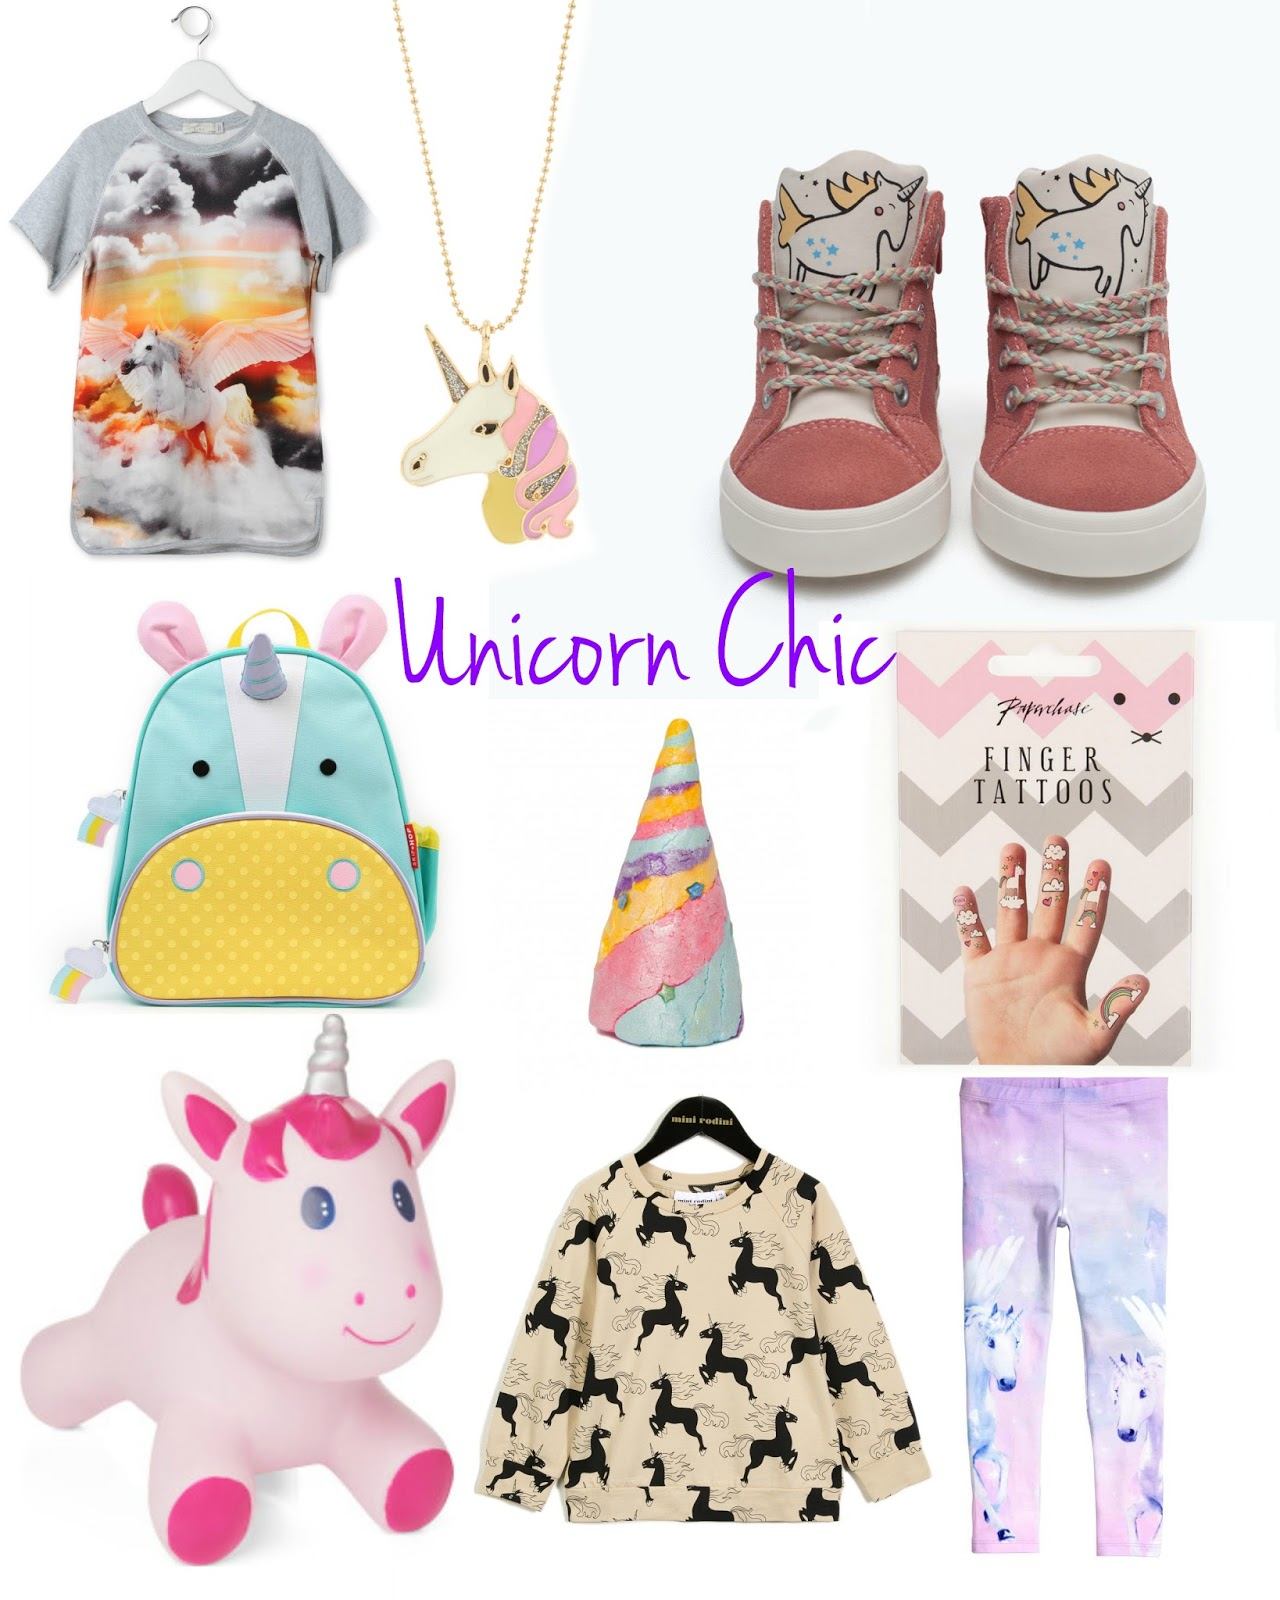 V. I. BUYS: Is it because I'm a Unicorn? Dreamy fashion, bedroom buys & a party box